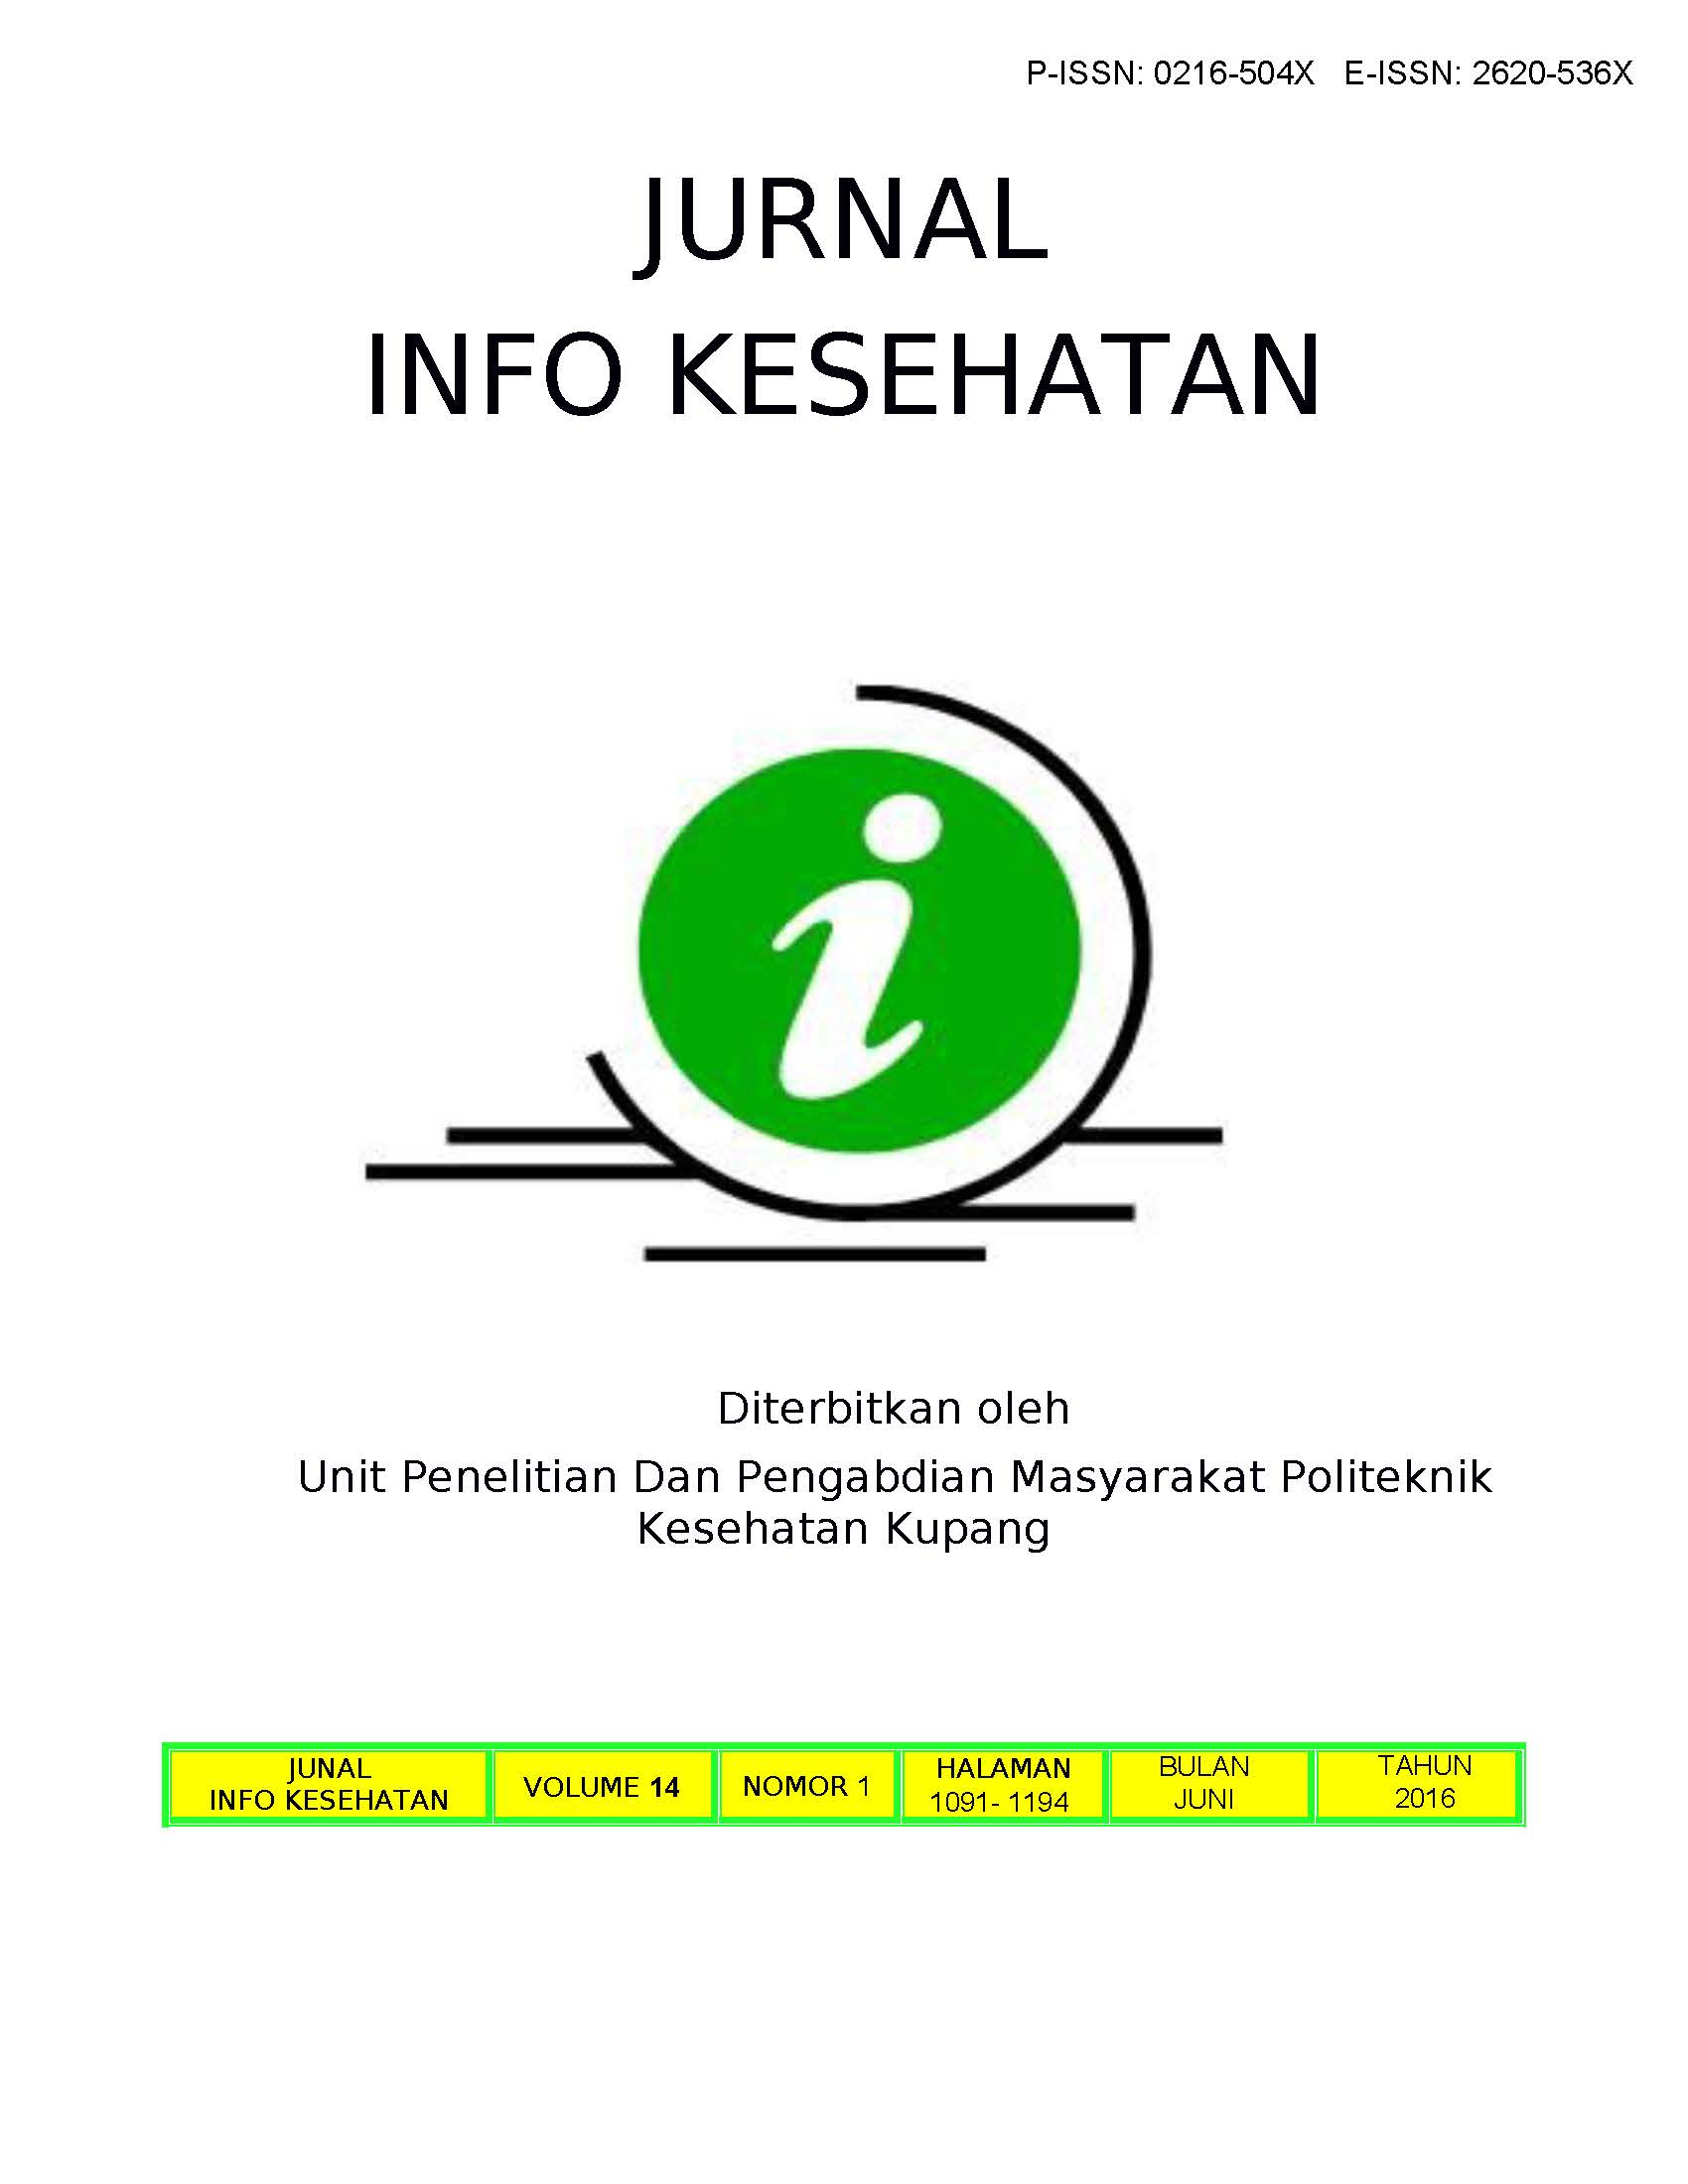 The Relationship Of Fe Zink Zn And Vitamin A To The New Students Of Elementary School S Nutrient Status In Outskirts Of Kupang City East Nusa Tenggara Province Jurnal Info Kesehatan